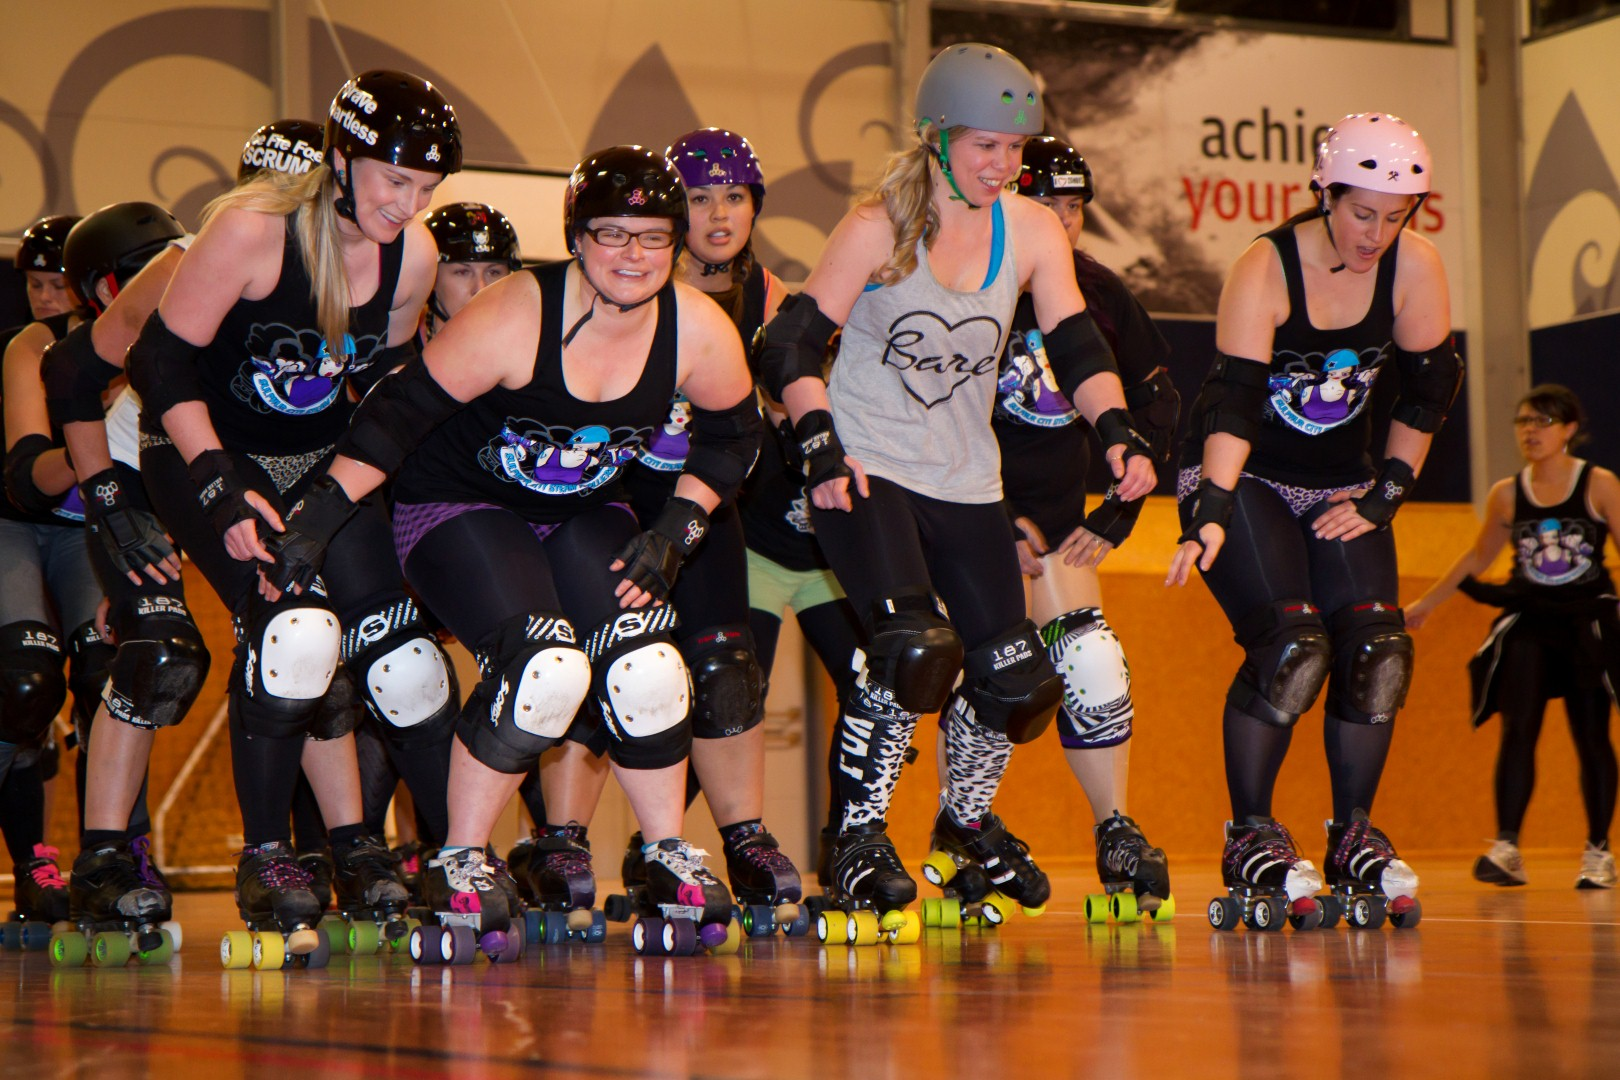 Roller Derby in New Zealand